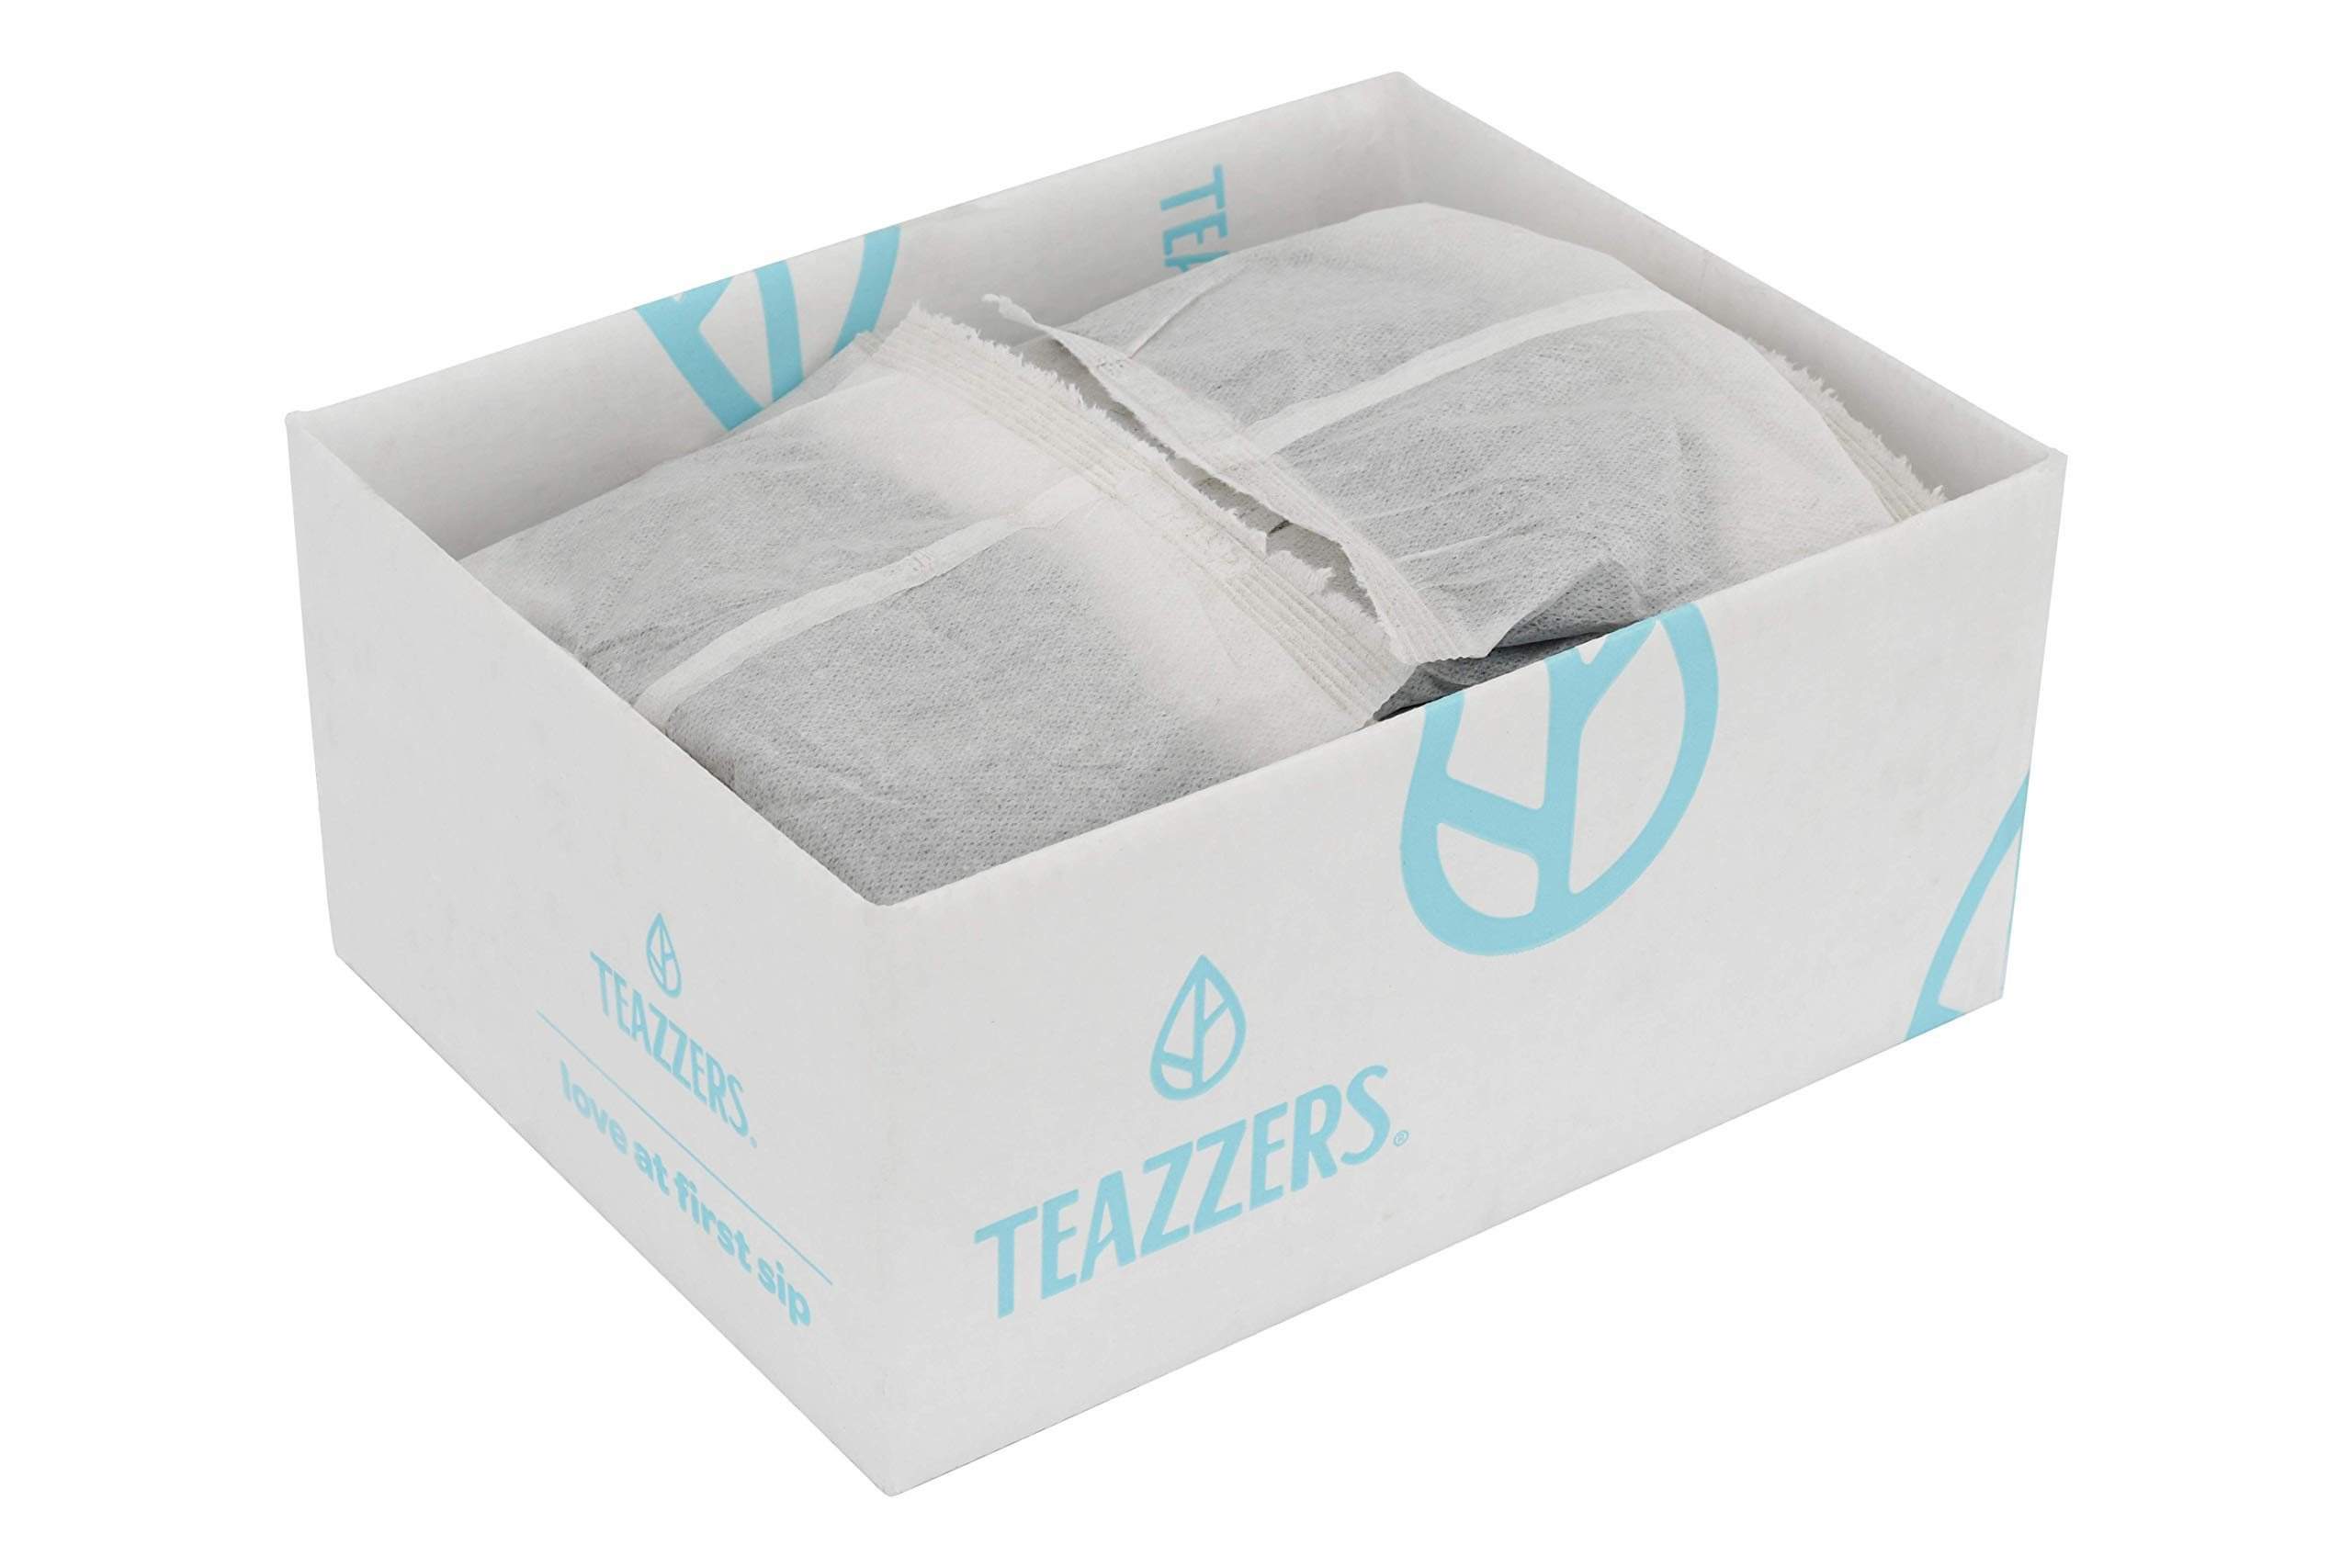 Teazzers Premium Black Raspberry Tea Bags, Large 2-Gallon Iced Tea Brew, Commercial Size Tea Filters, Bulk 48 Pack, 2oz. Great for Foodservice Ice Tea Brewers, Unsweetened